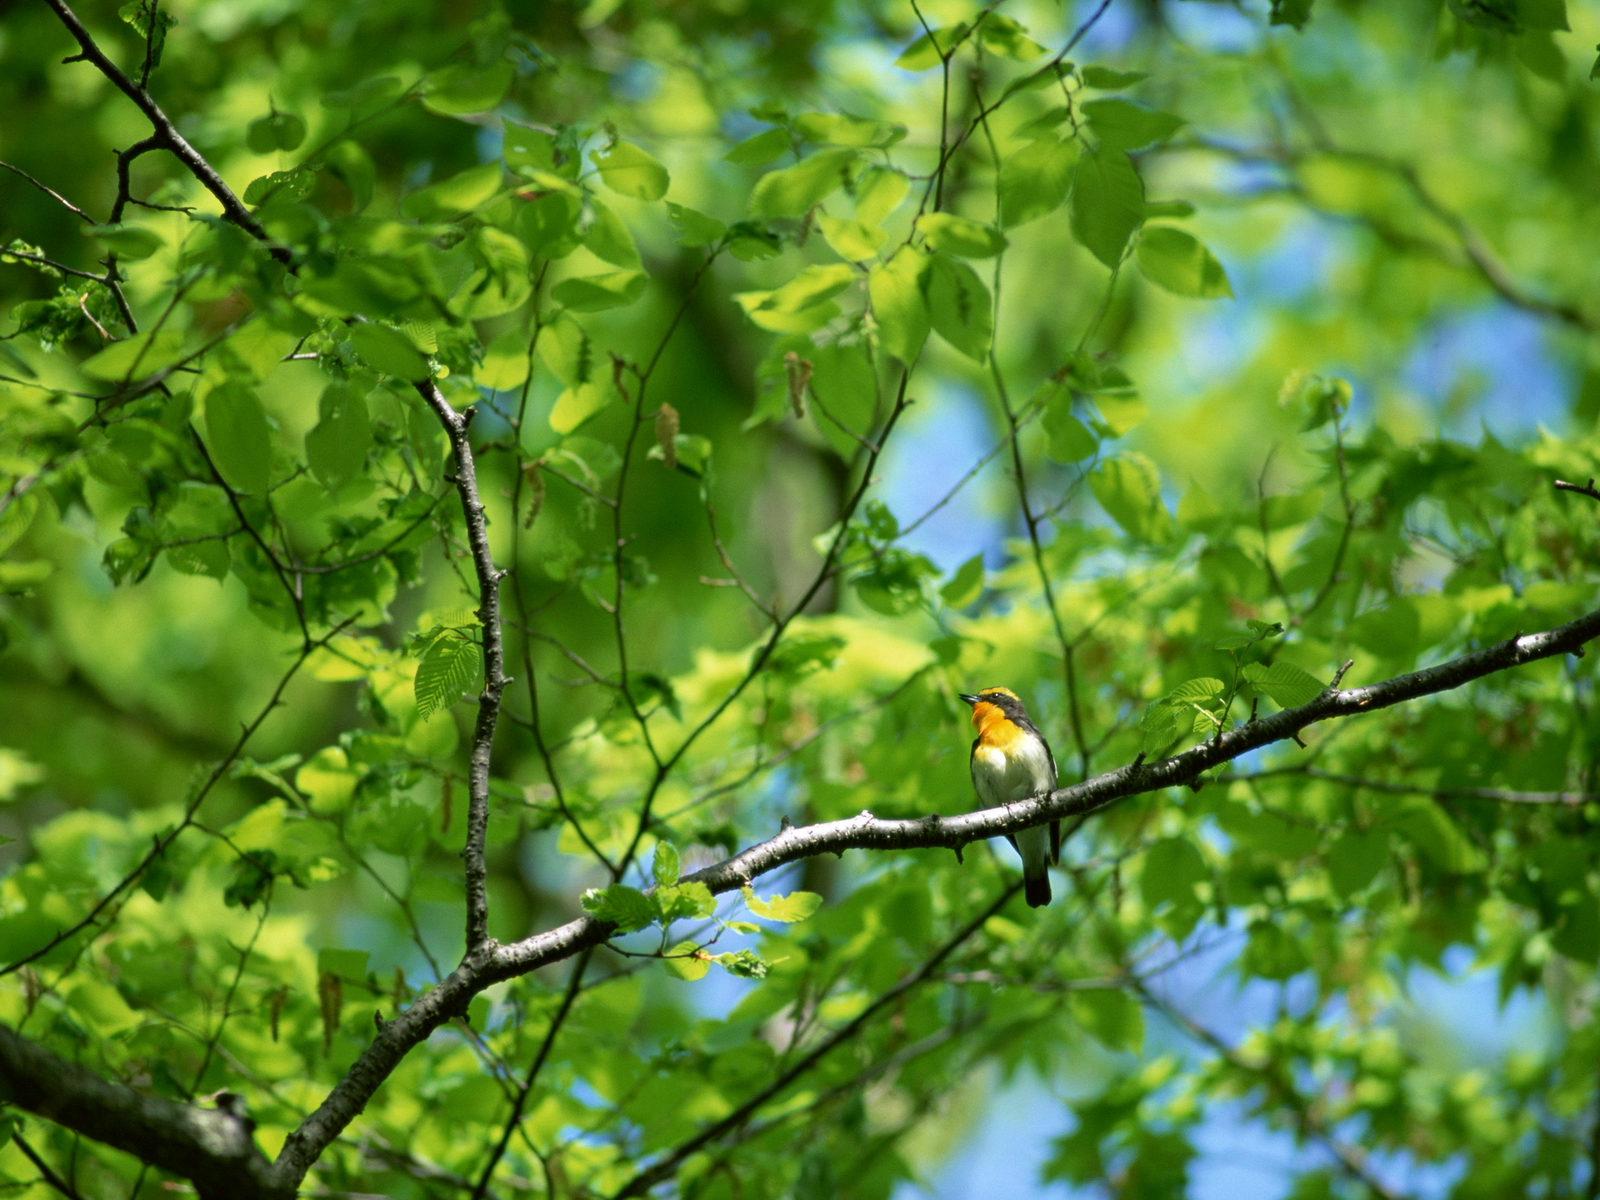 Natural Bird On A Branch A Tree Japanese Photolog Bird On A Branch Tattoo Meaning Bird On A Branch Template A Tree Bird On A Branch houzz-03 Bird On A Branch